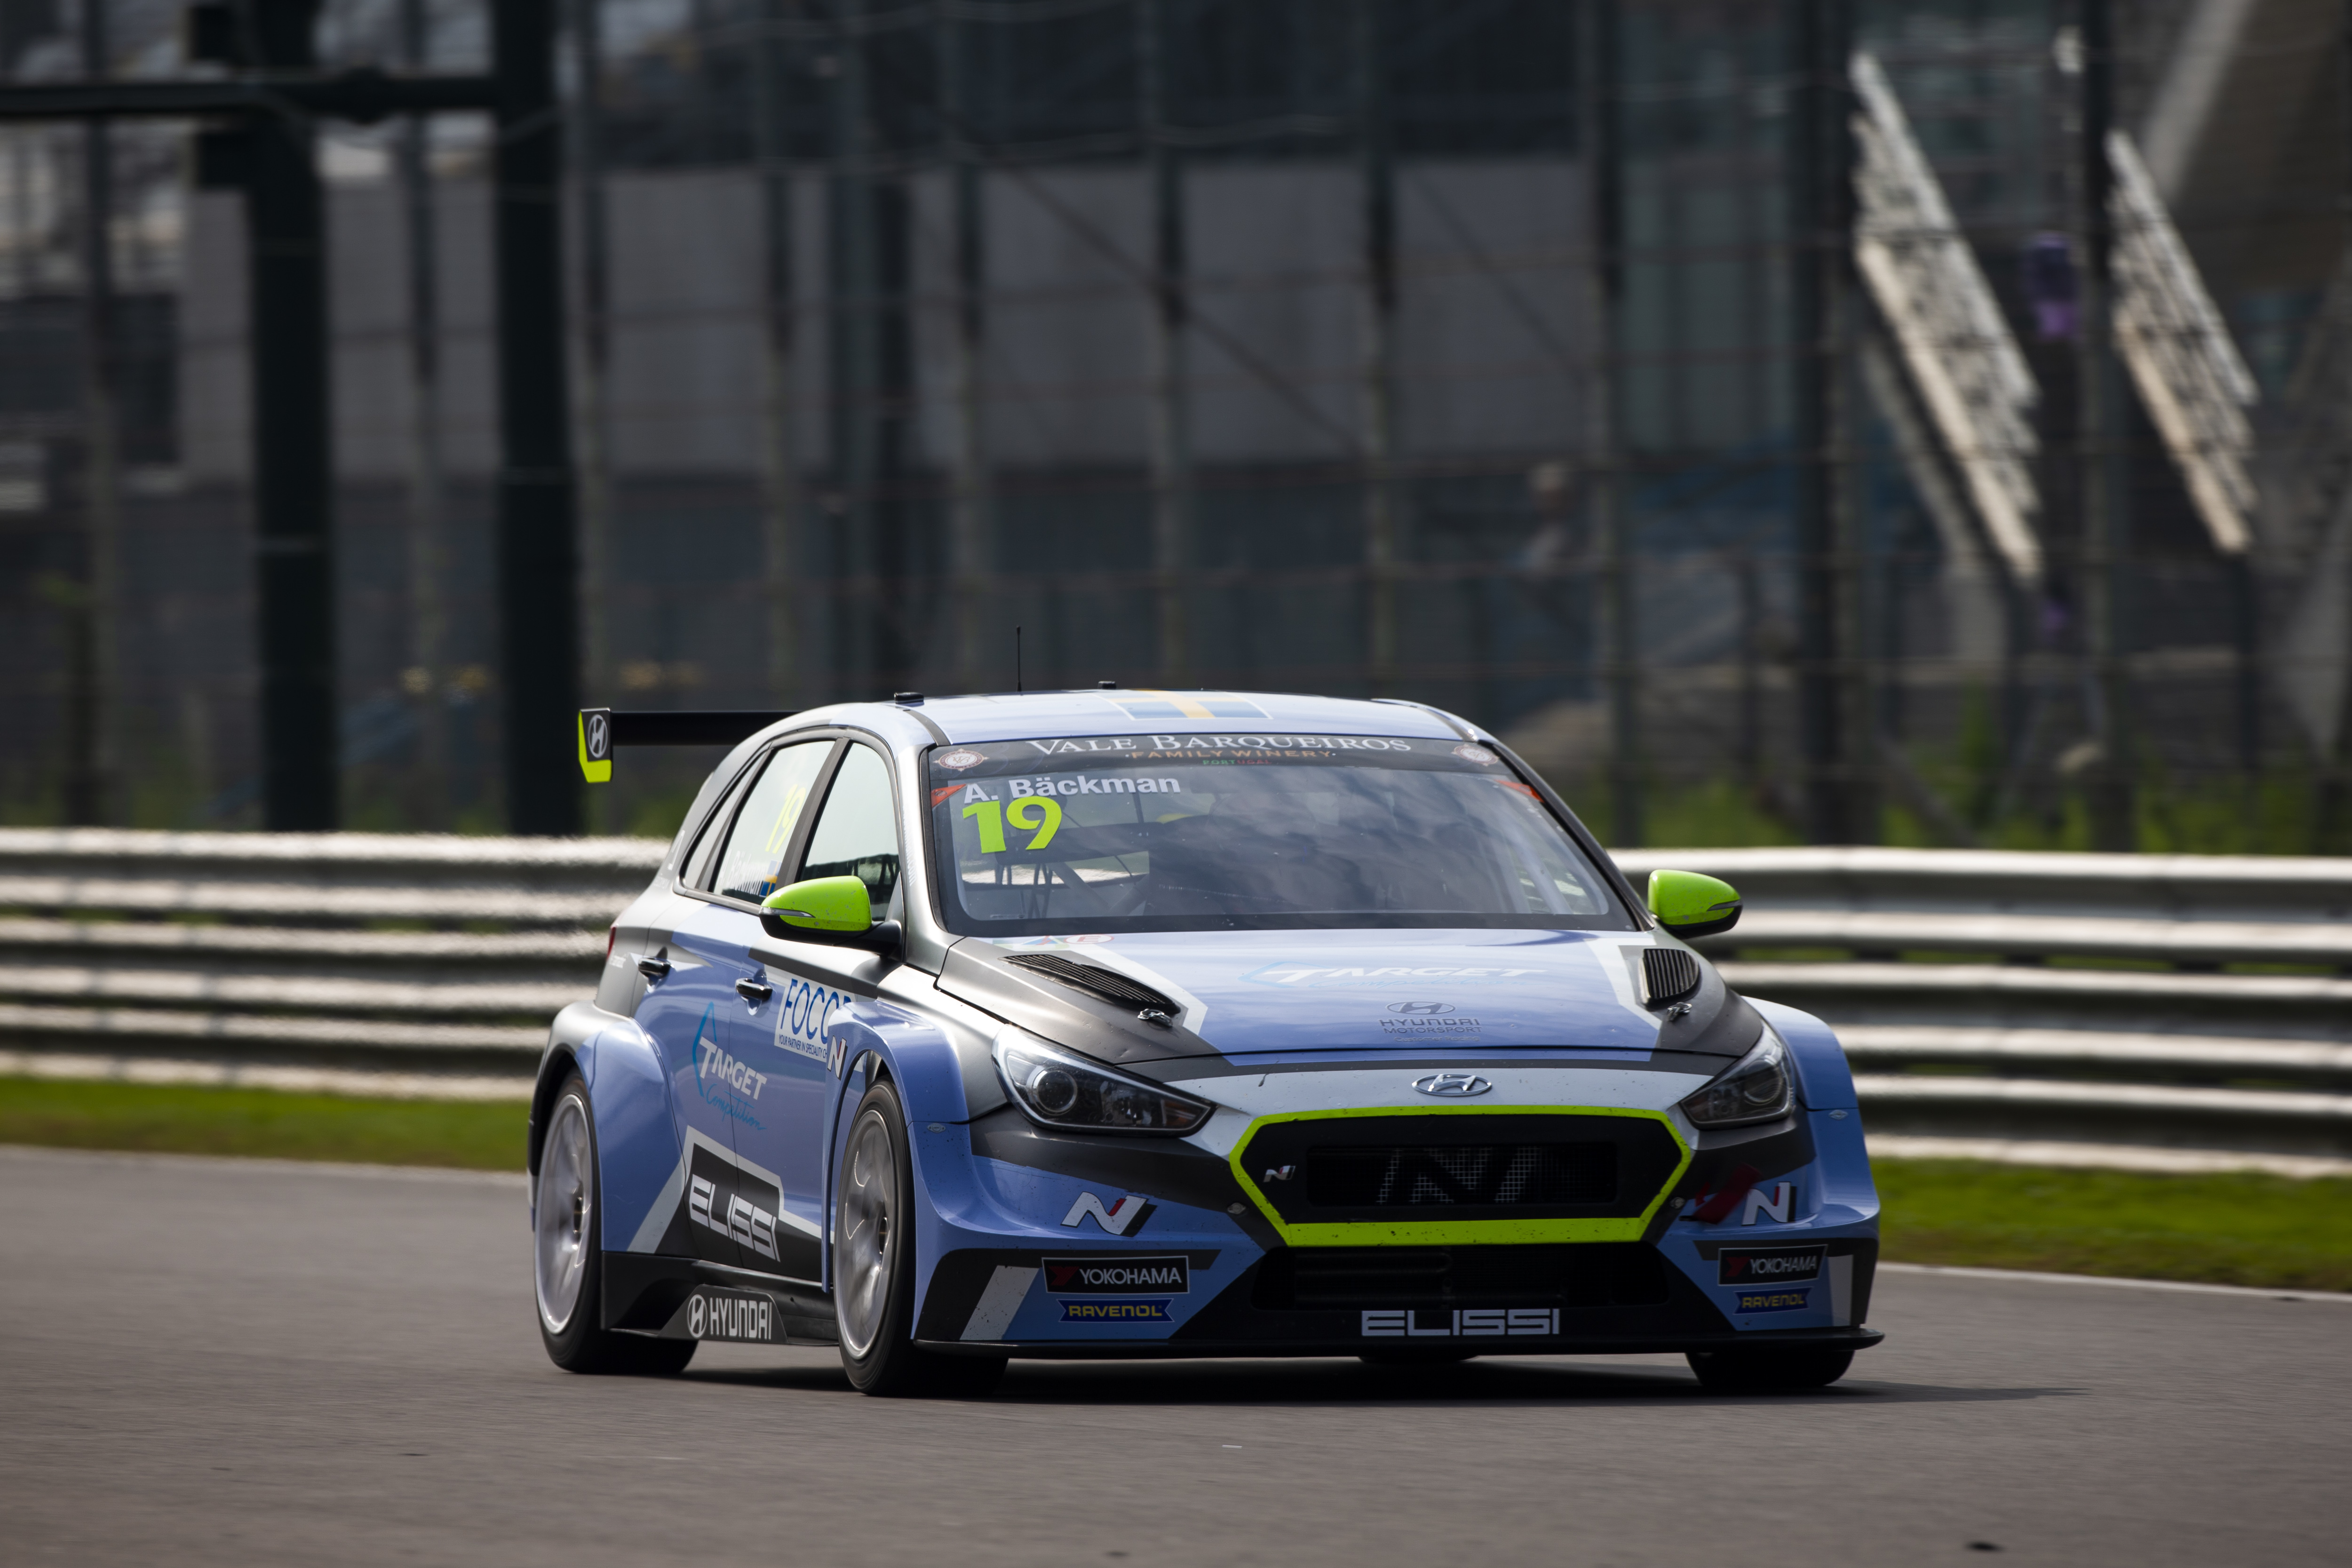 Andreas Bäckman - i30 N TCR - TCR Europe